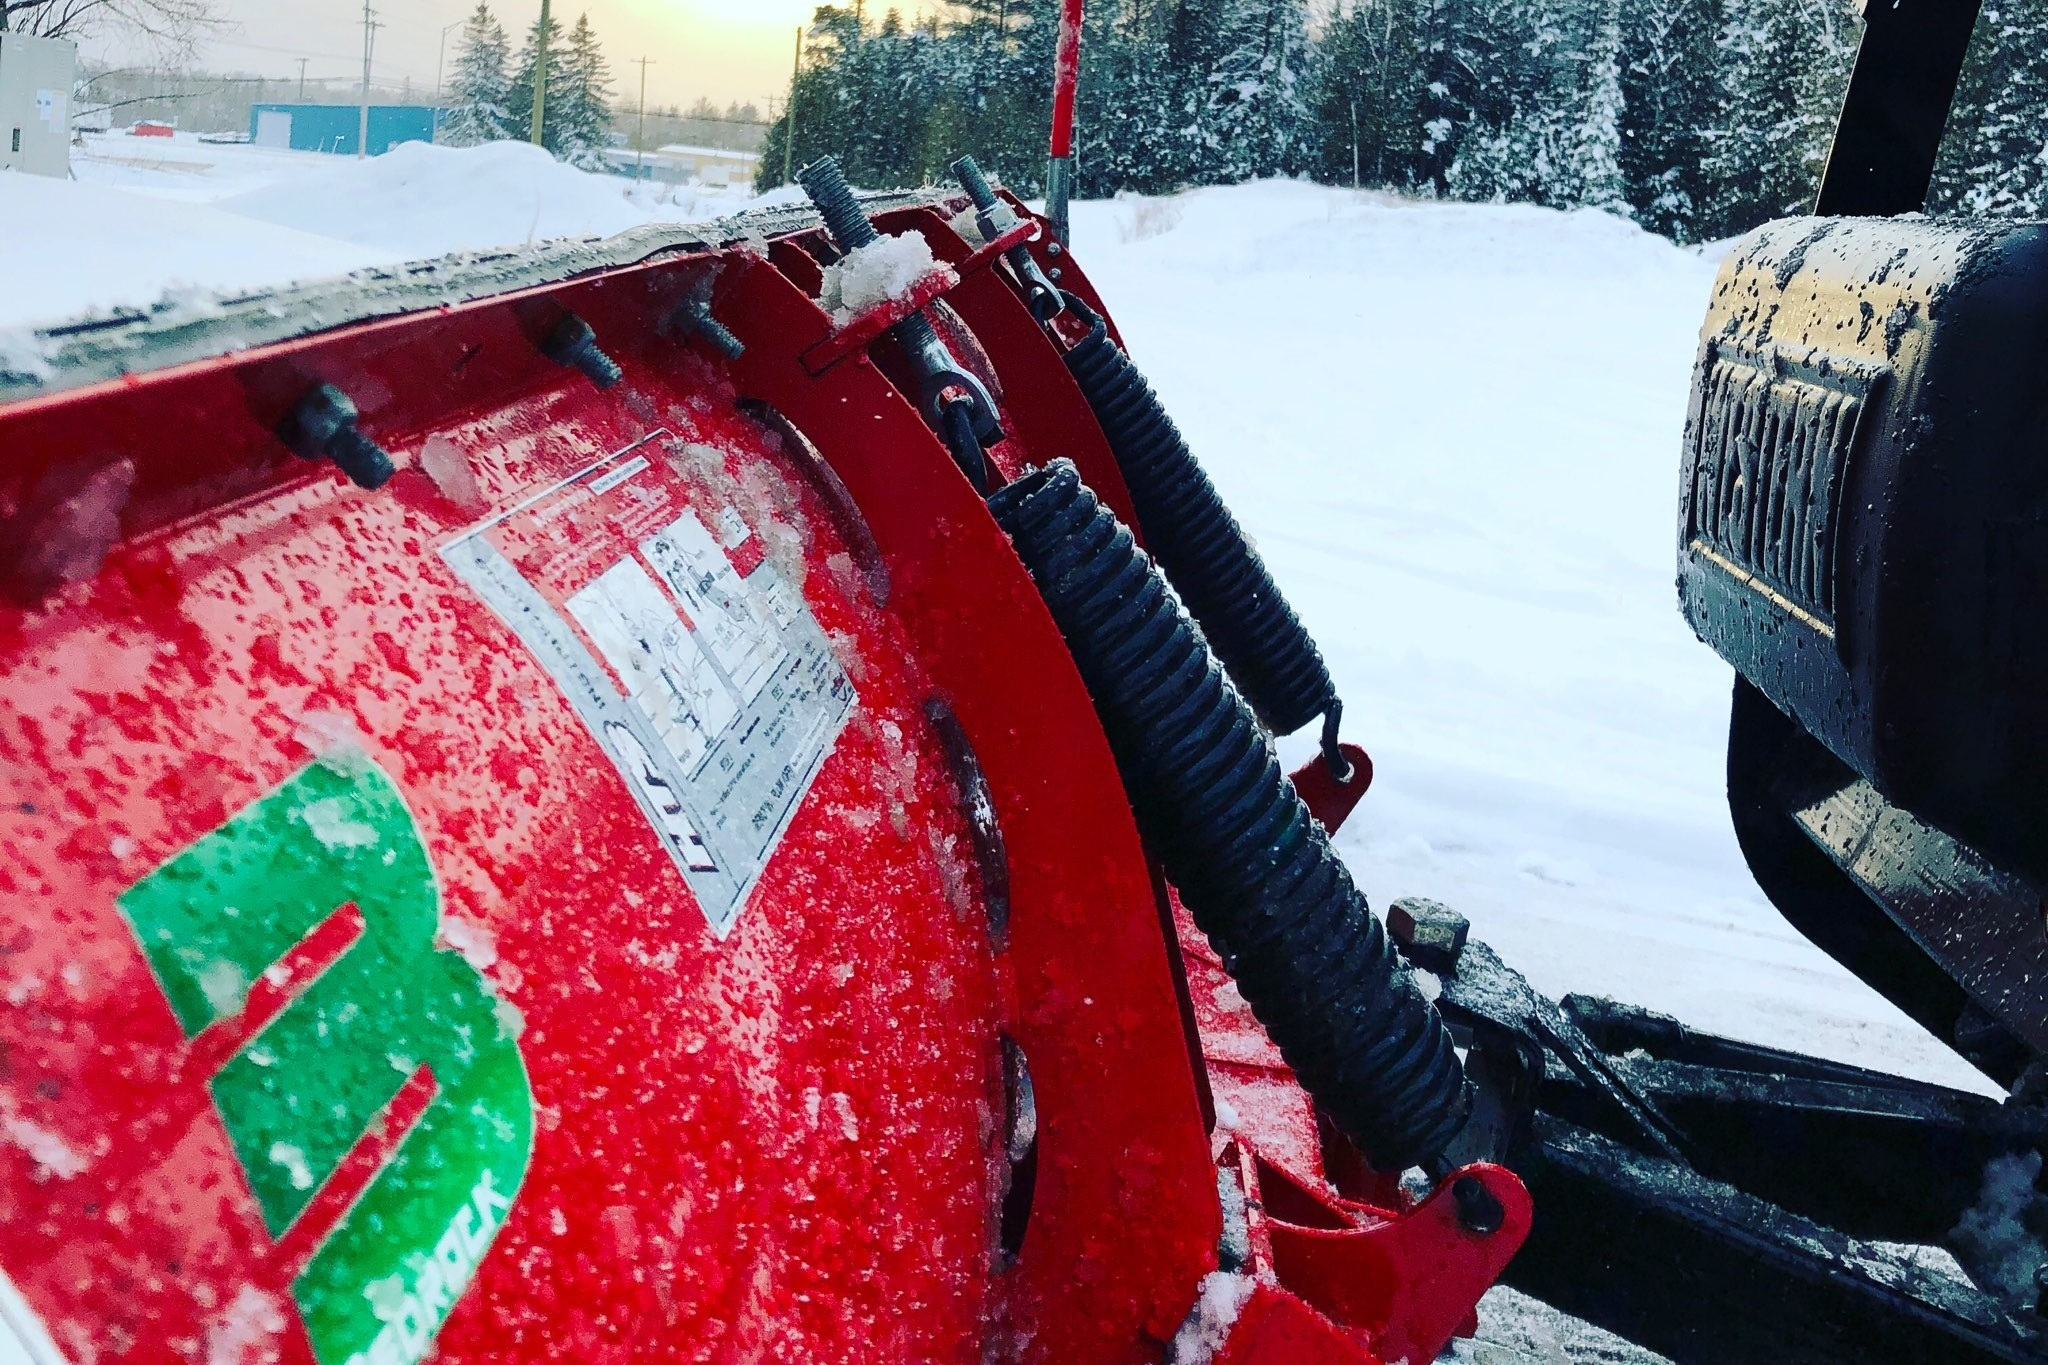 SNOW REMOVAL - We'll get rid of all the snow and ice from the most important outdoor spaces on your residential, commercial, or industrial property.